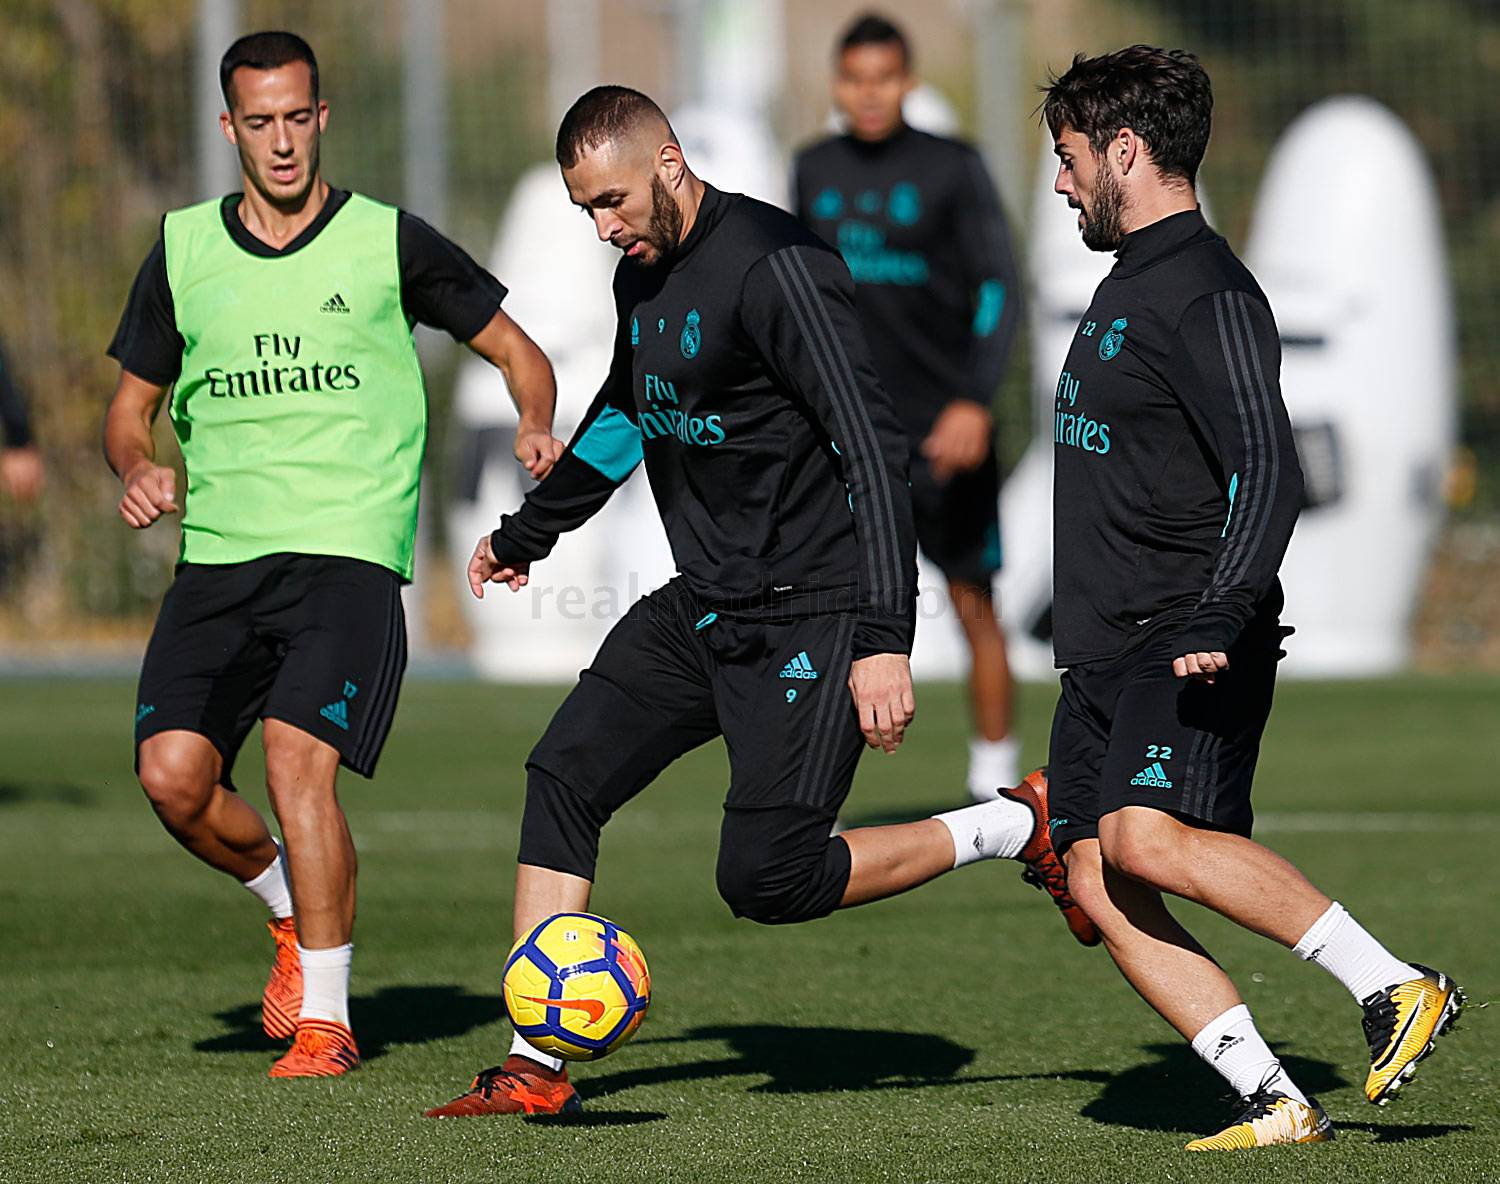 Real Madrid - Entrenamiento del Real Madrid - 28-10-2017